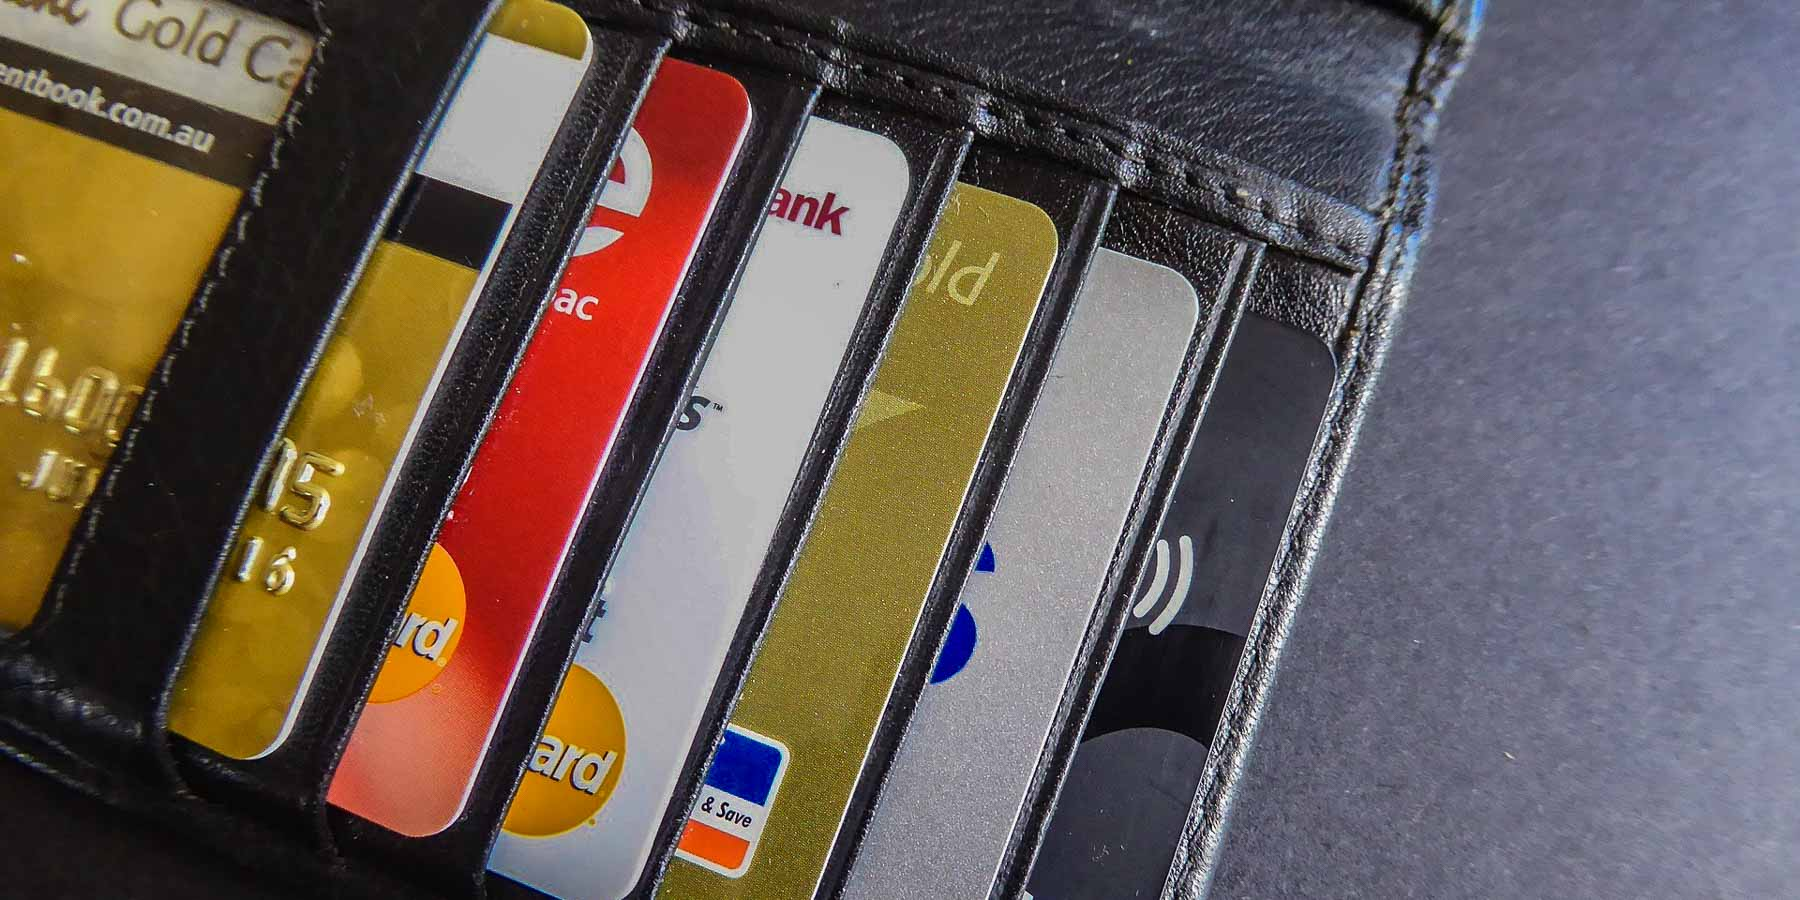 A wallet showing credit cards.